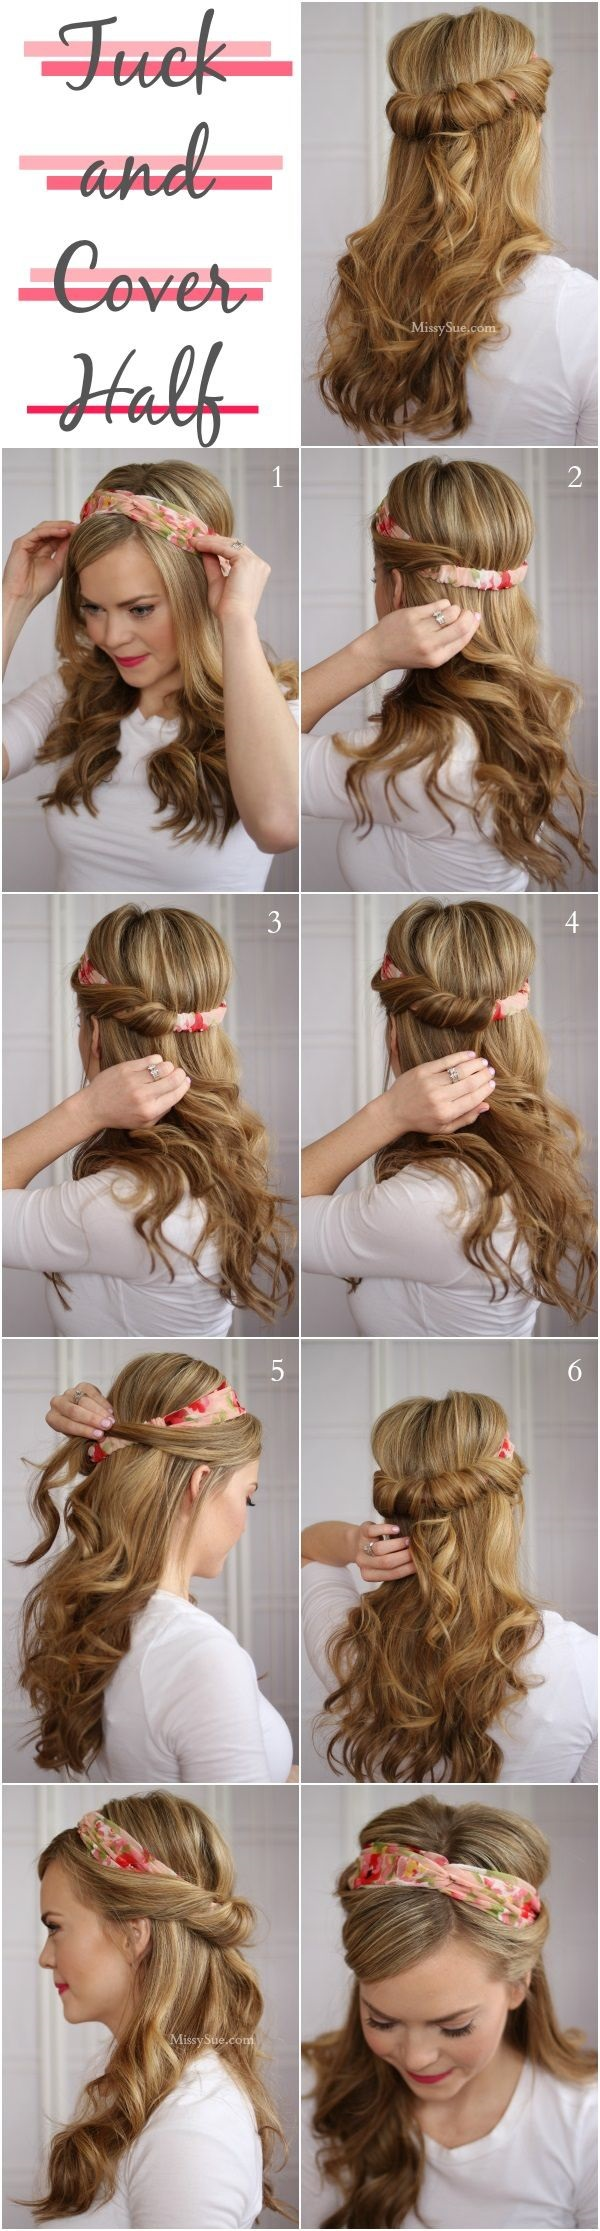 Simple Five Minute Hairstyles (42)